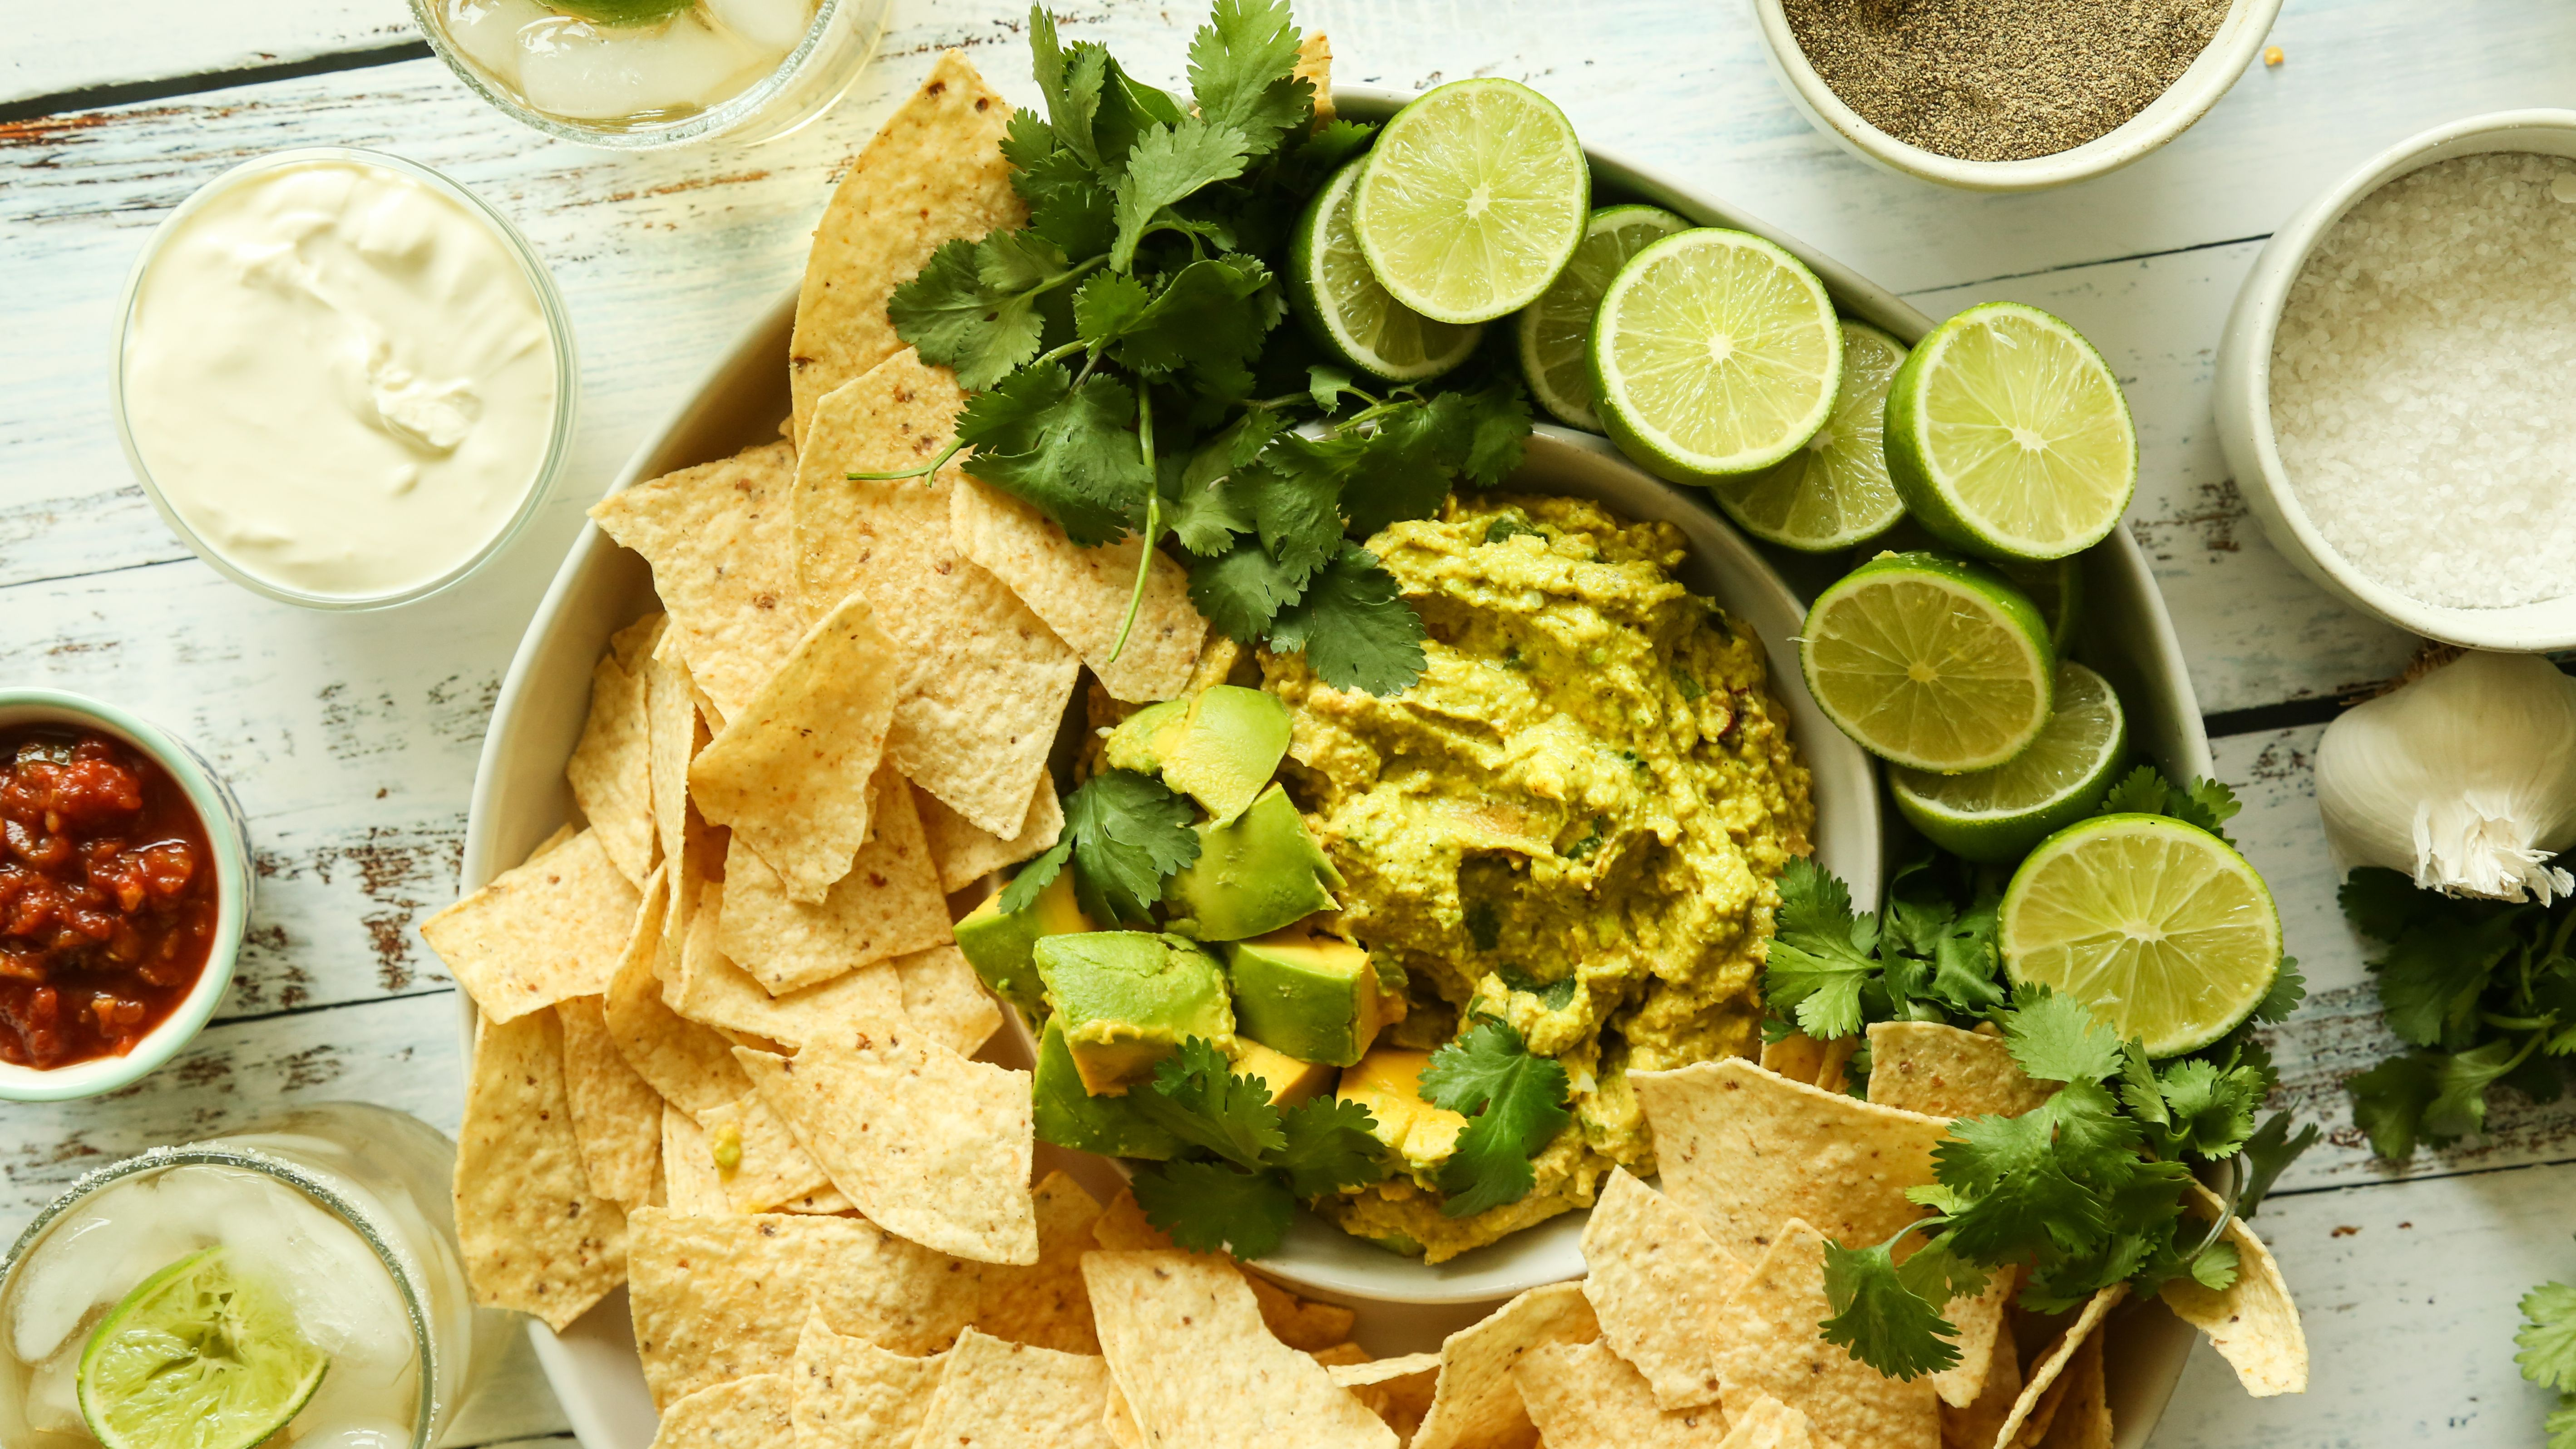 Can You Substitute Lime For Lemon In Guacamole Guacamole With Sour Cream Recipe Food Com Recipe Sour Cream Recipes Summer Potluck Recipes Yummy Appetizers